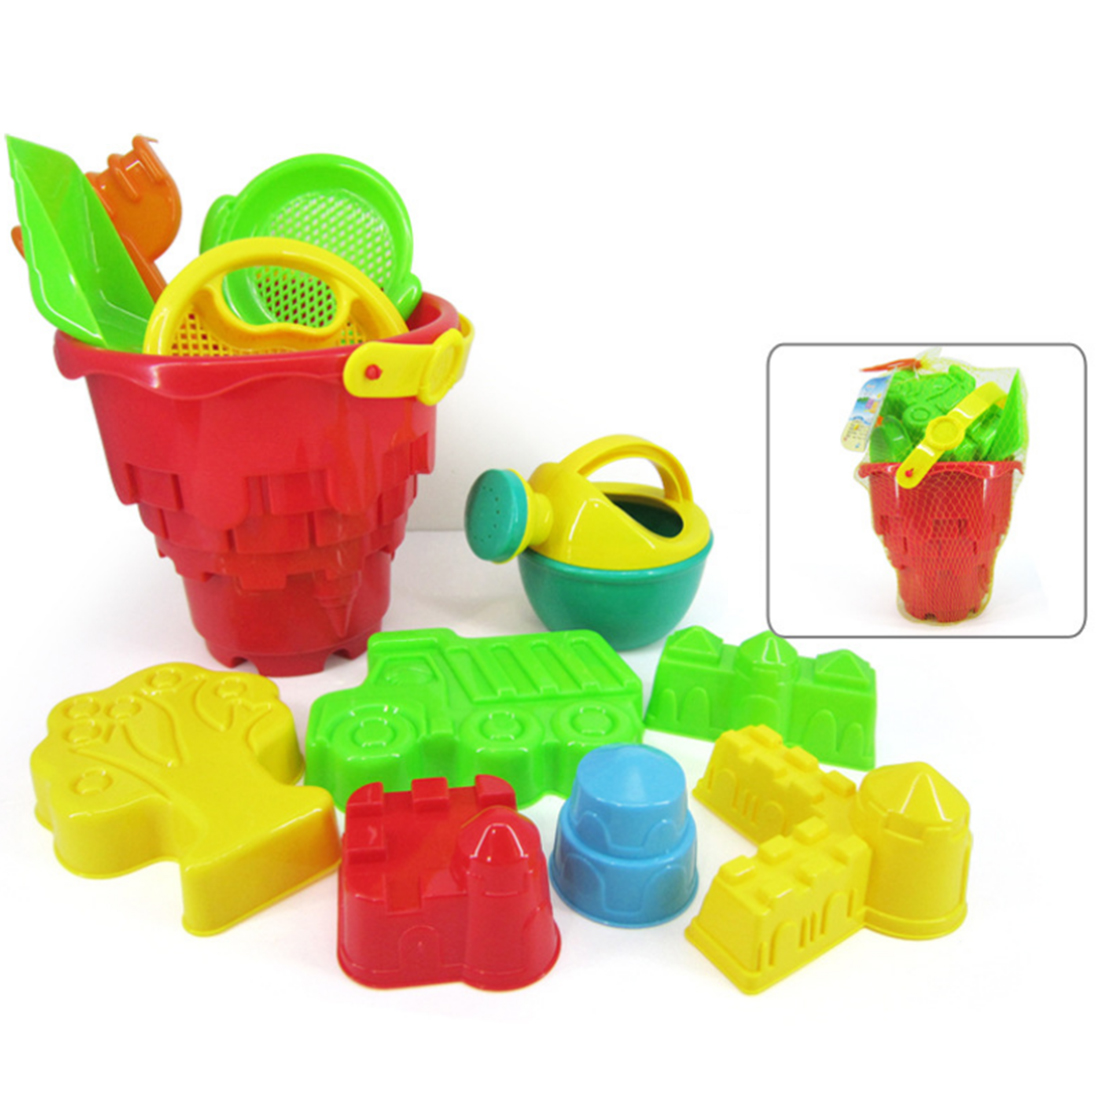 Click here to buy Set of 12Pcs Beach Sand Toy Set with Mesh Bag for Kids Beach Playing Toys Color Random.